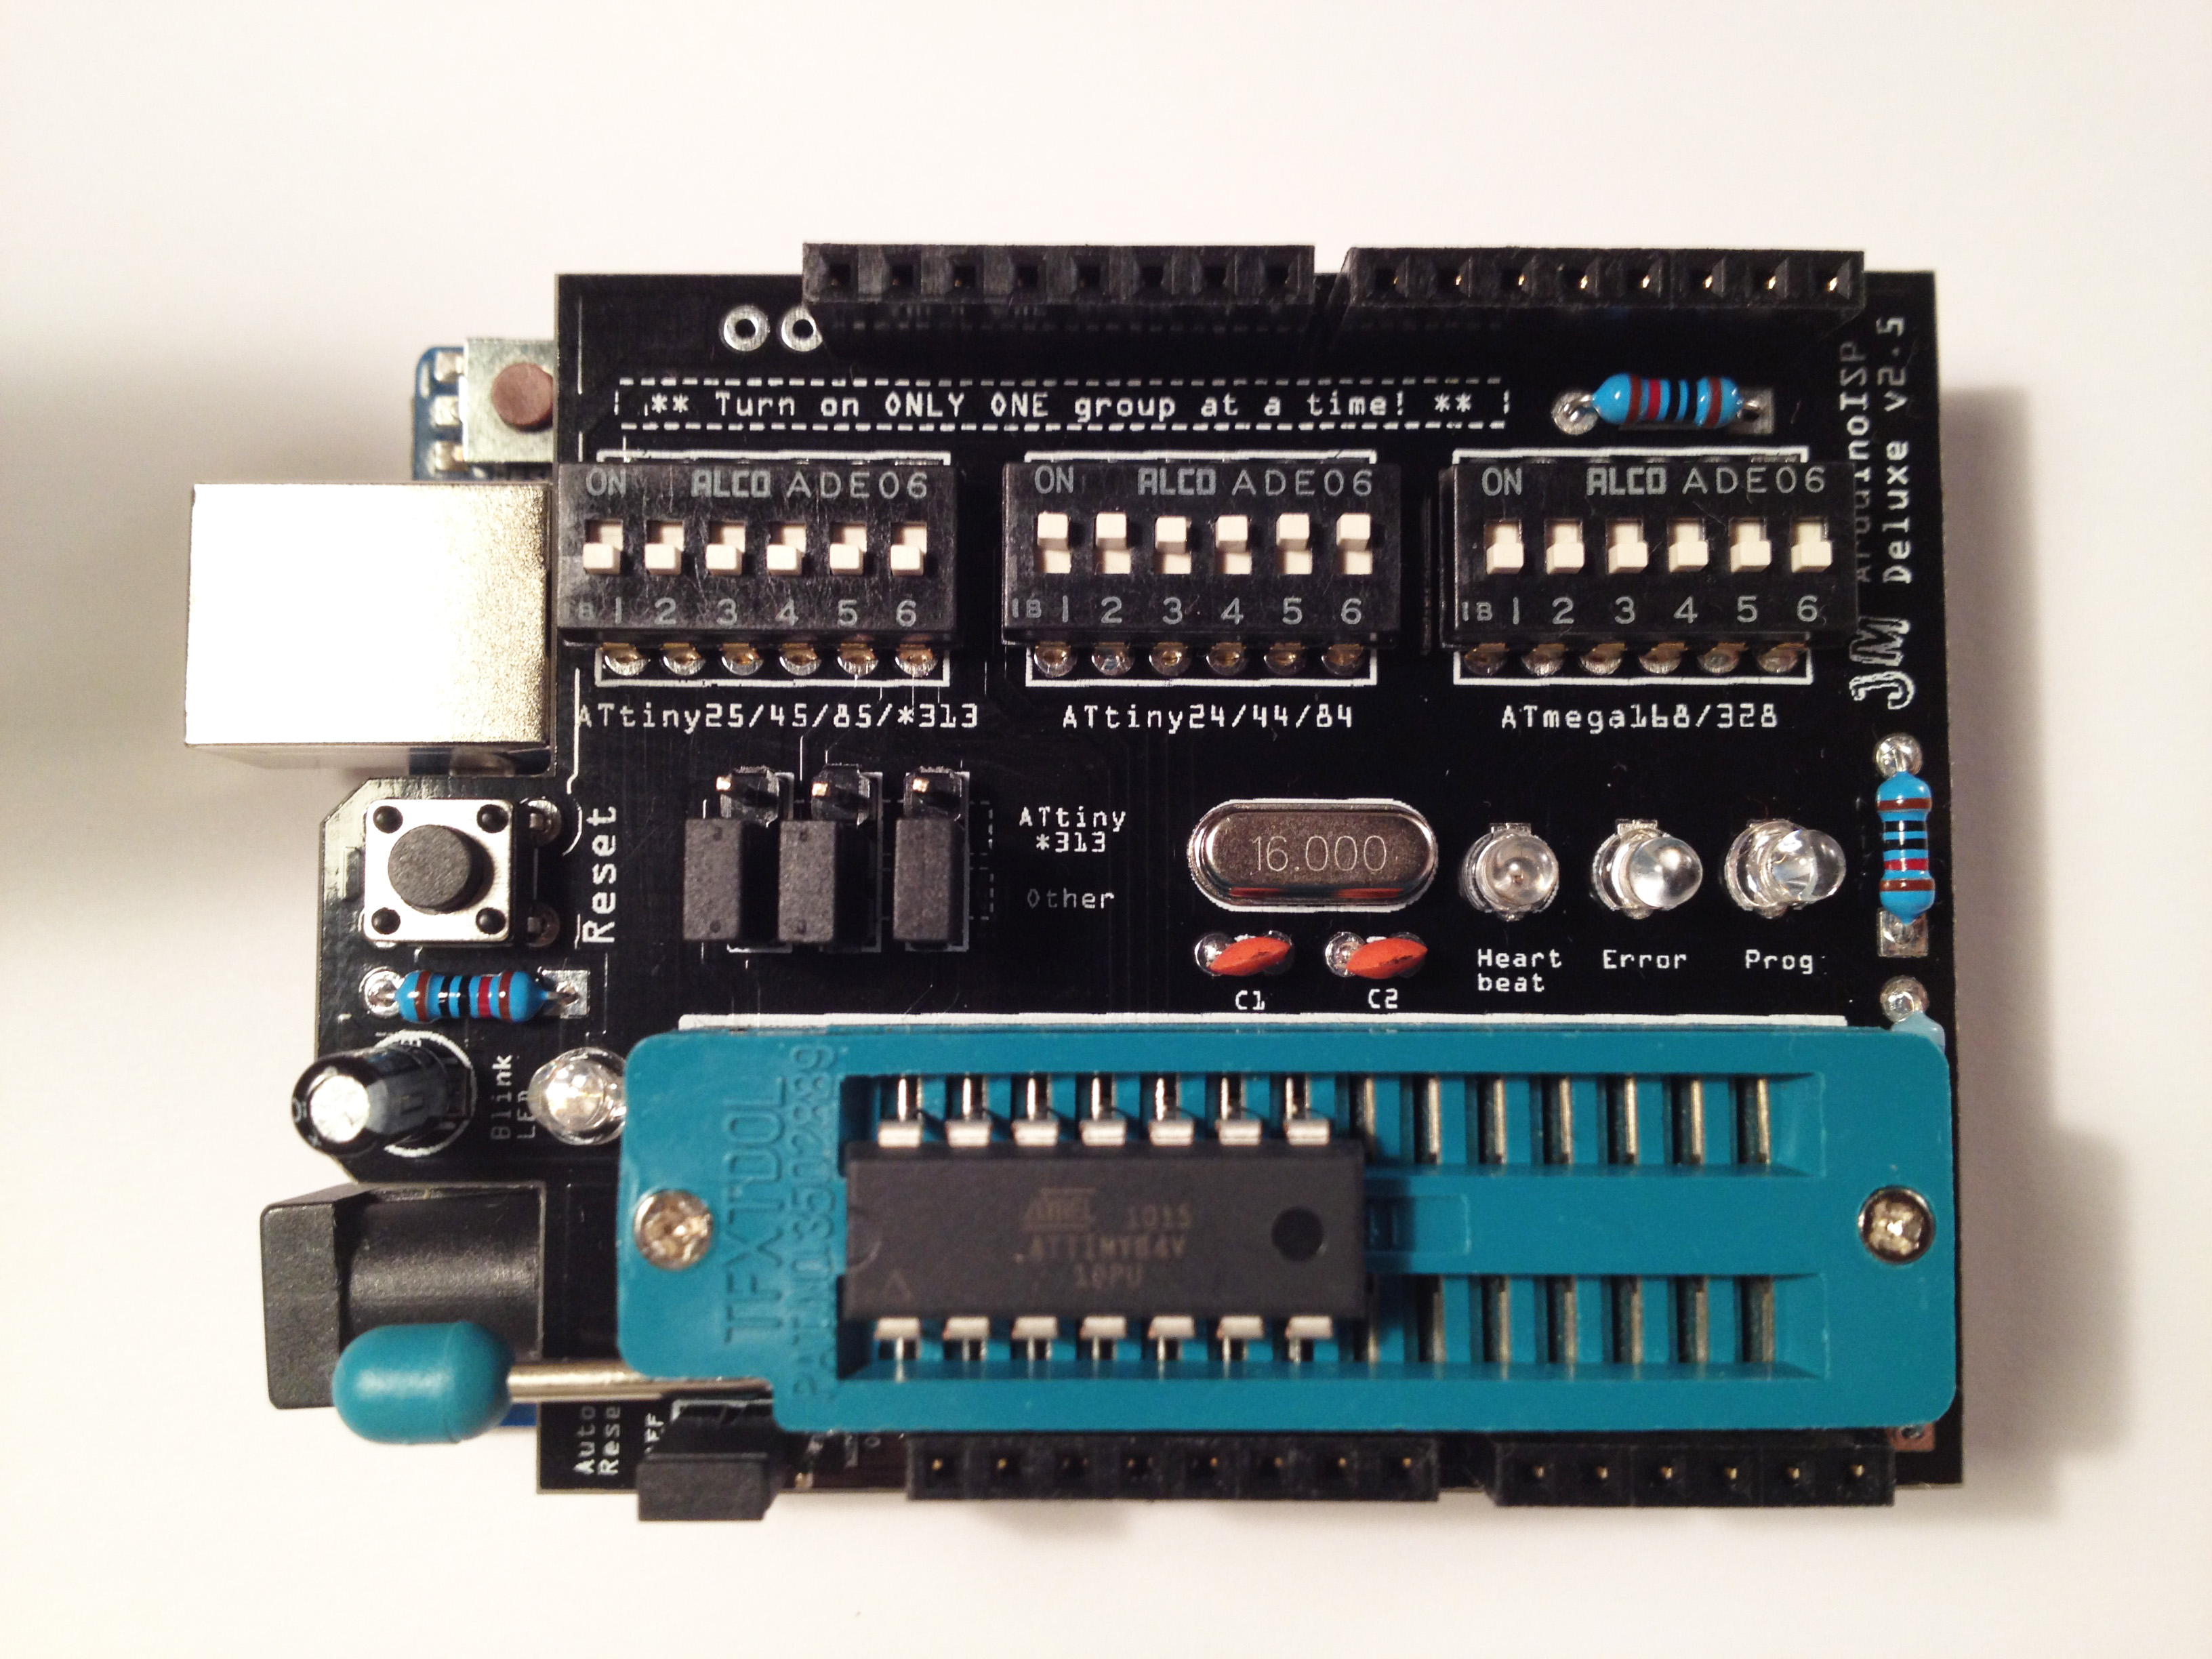 The newest version of the ArduinoISP Deluxe Shield, version 2.5!